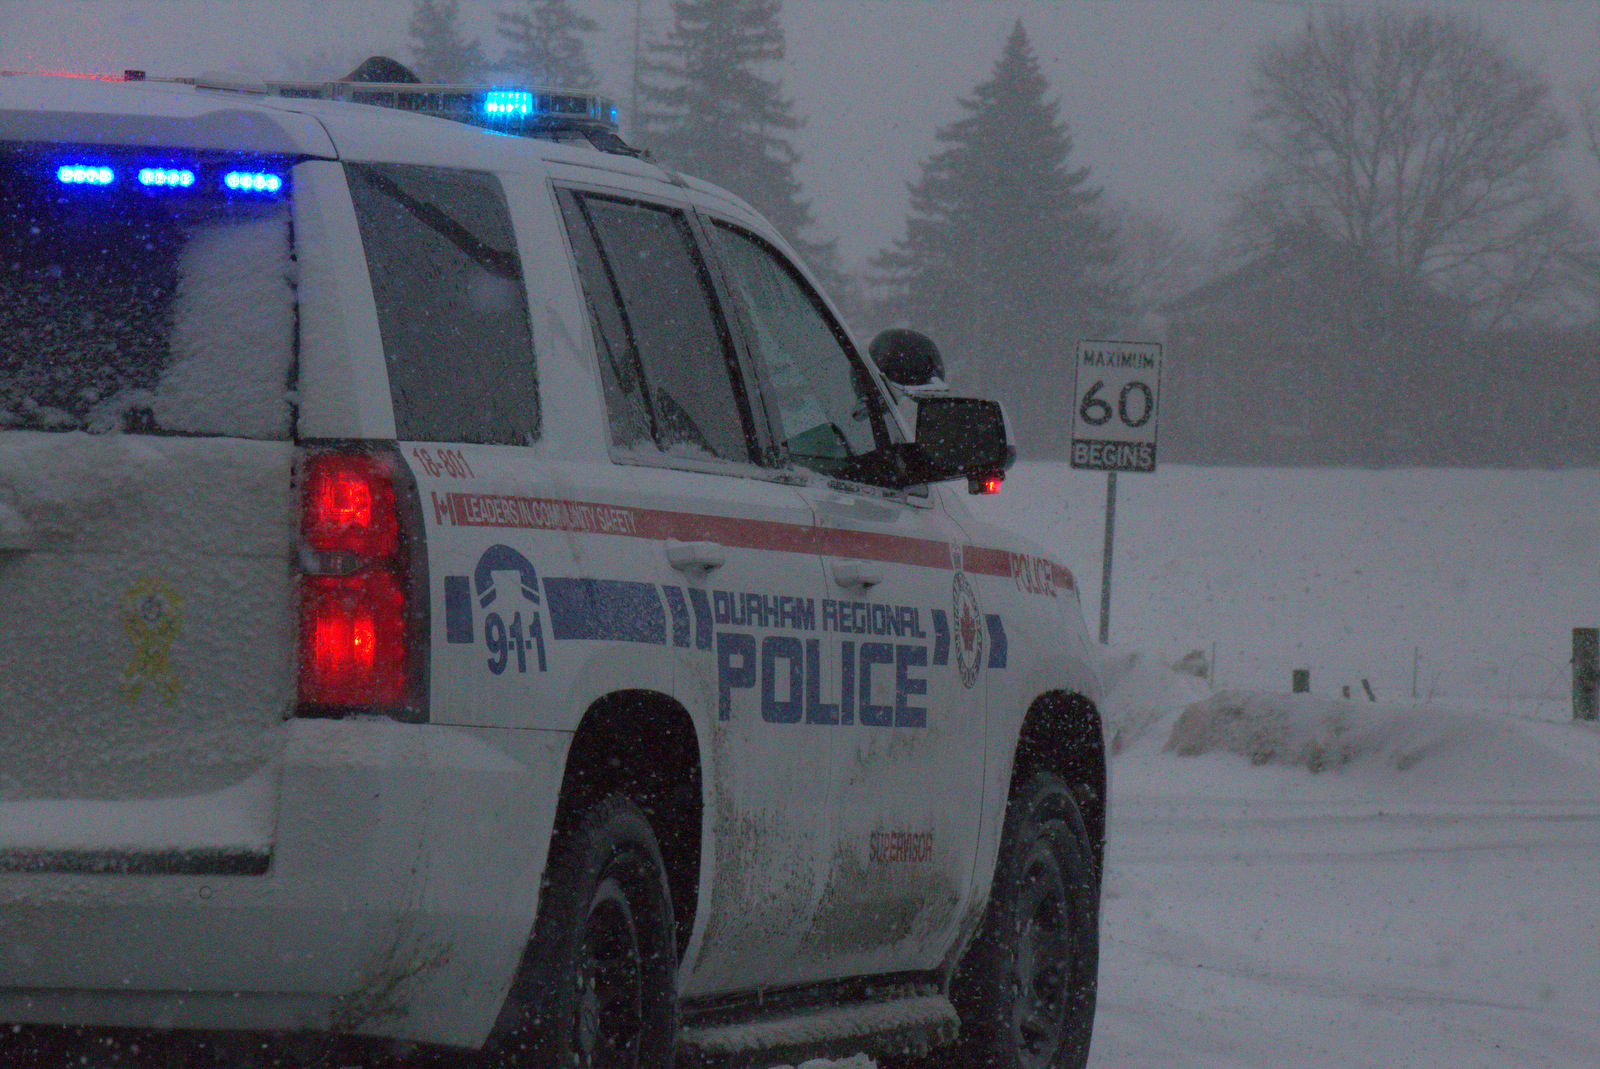 Police asking motorists to drive according to road and weather conditions